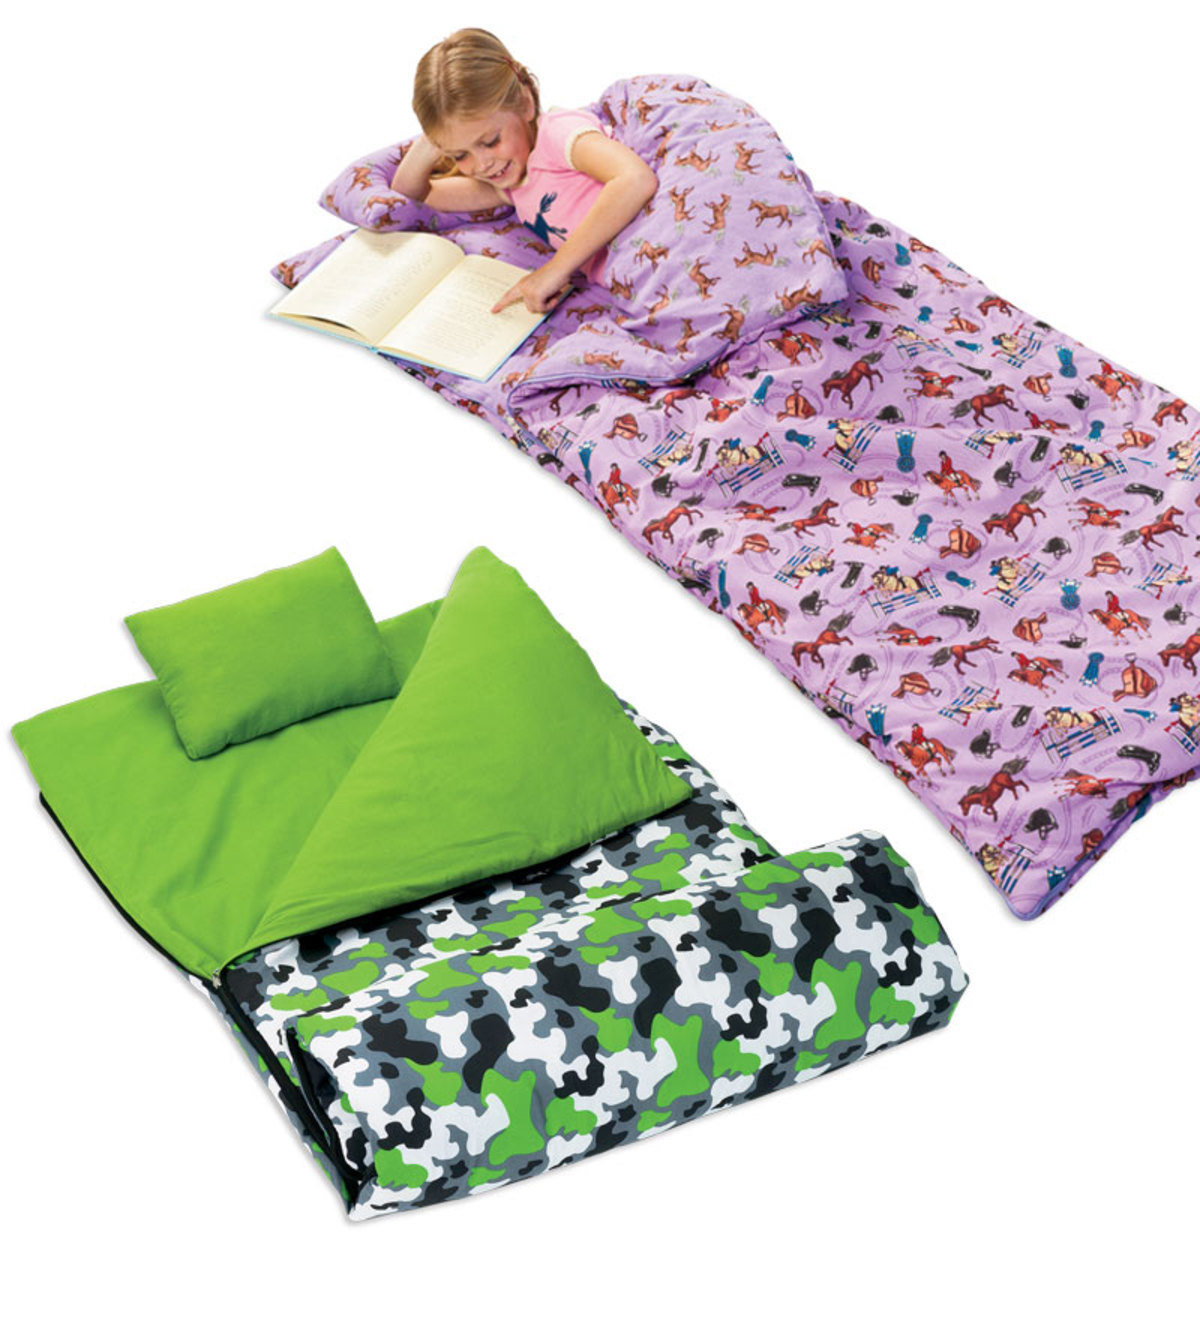 100% Super-Soft Cozy Cotton Machine Washable Flannel Kid's Sleeping Bag with Pillow and Storage Bag